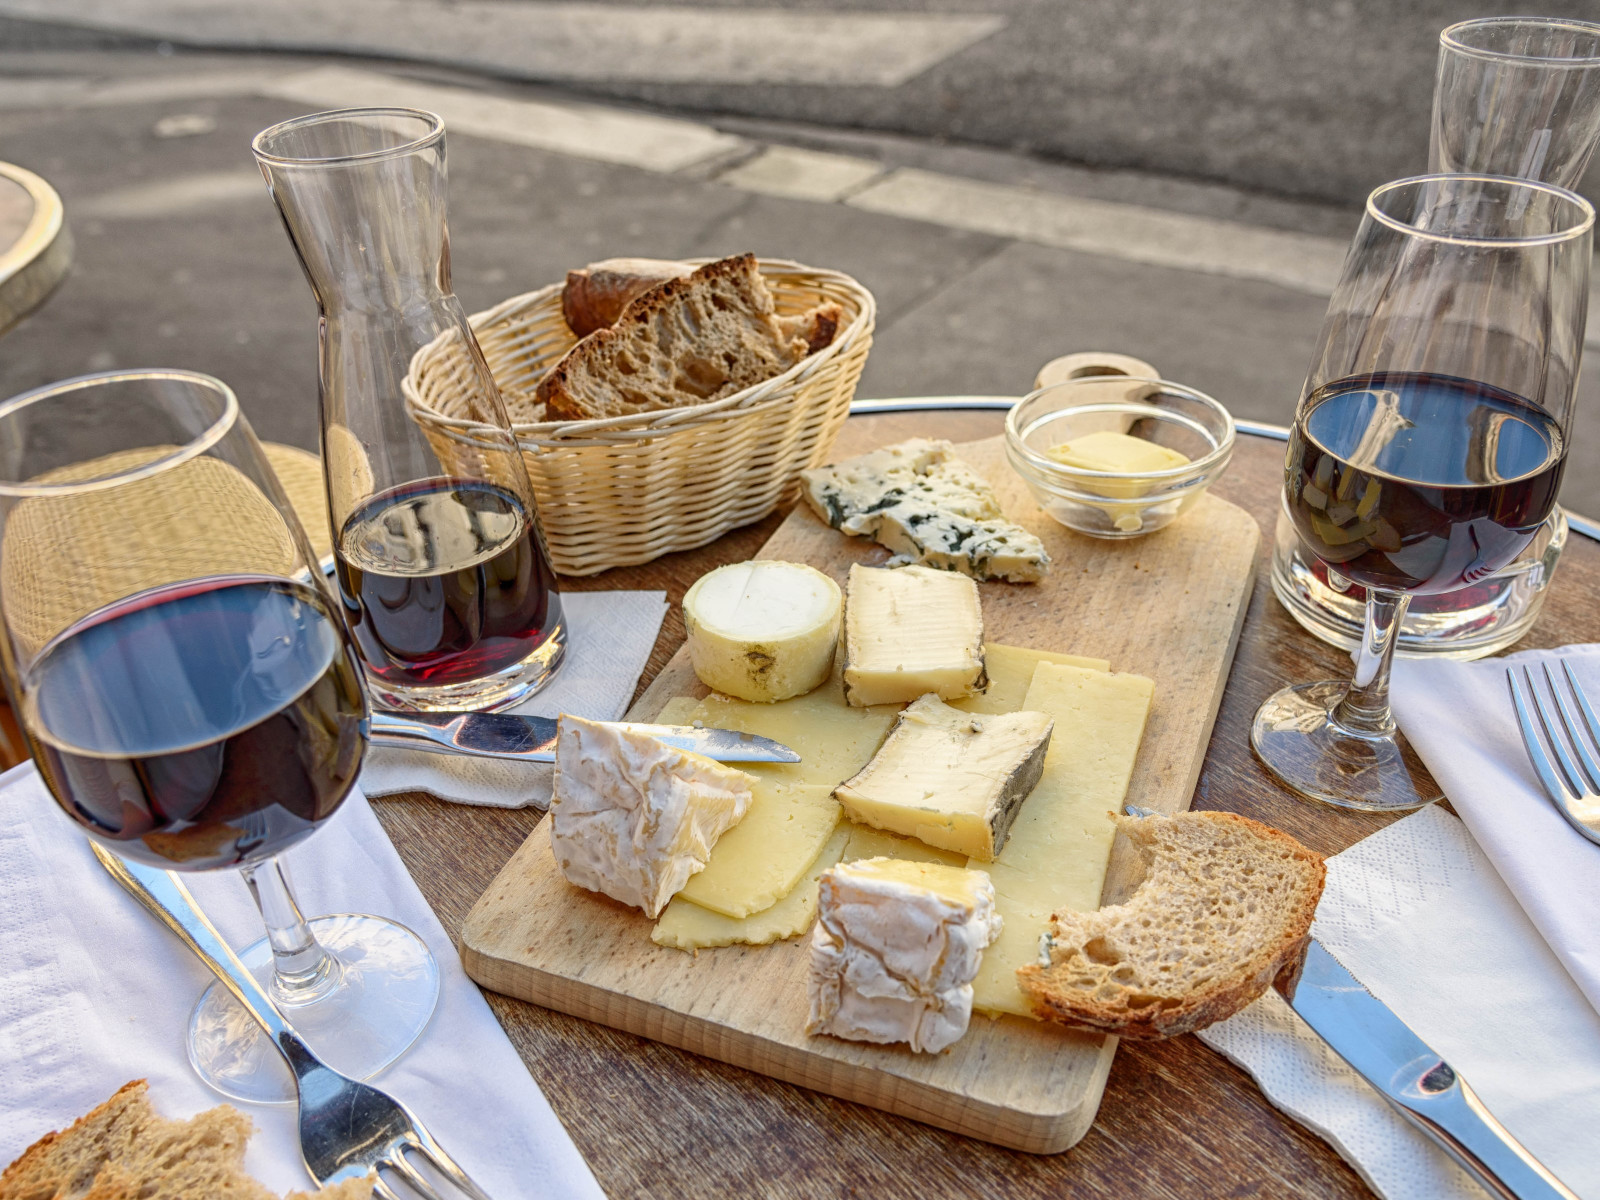 Cheese, wine and bread. Good food and drink wallpaper 1600x1200